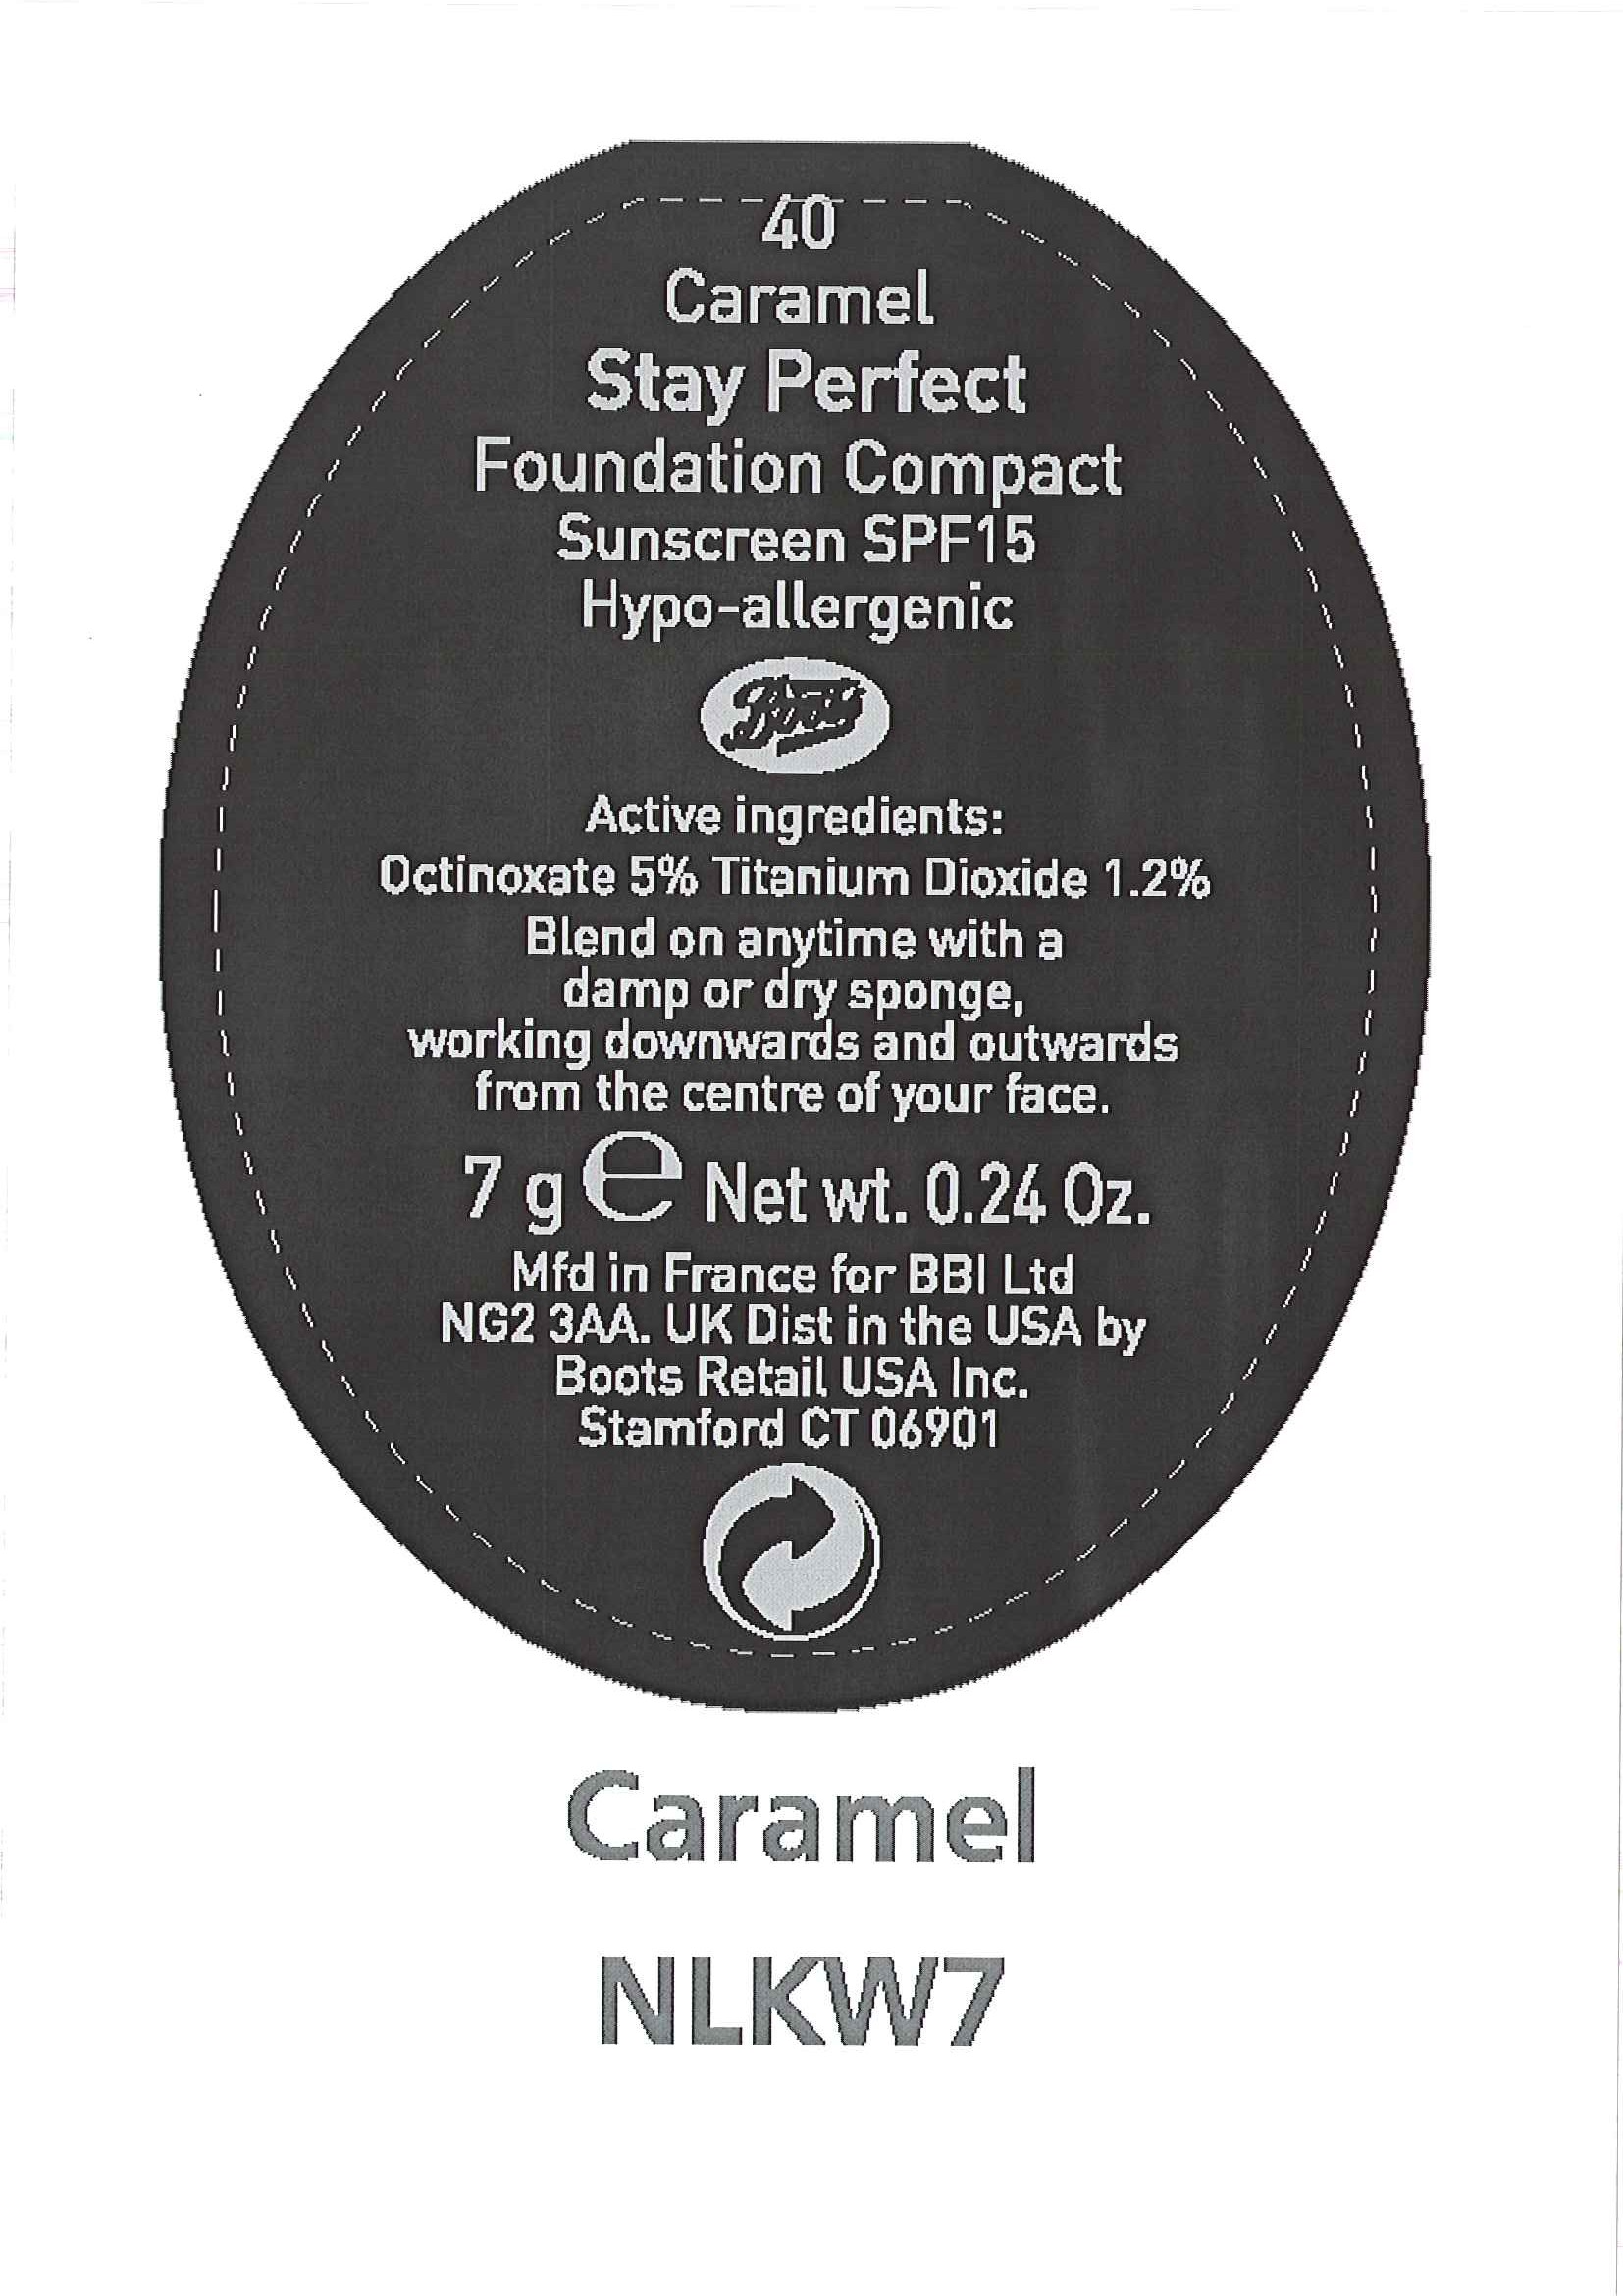 Is No7 Stay Perfect Foundation Compact Sunscreen Spf 15 Caramel safe while breastfeeding